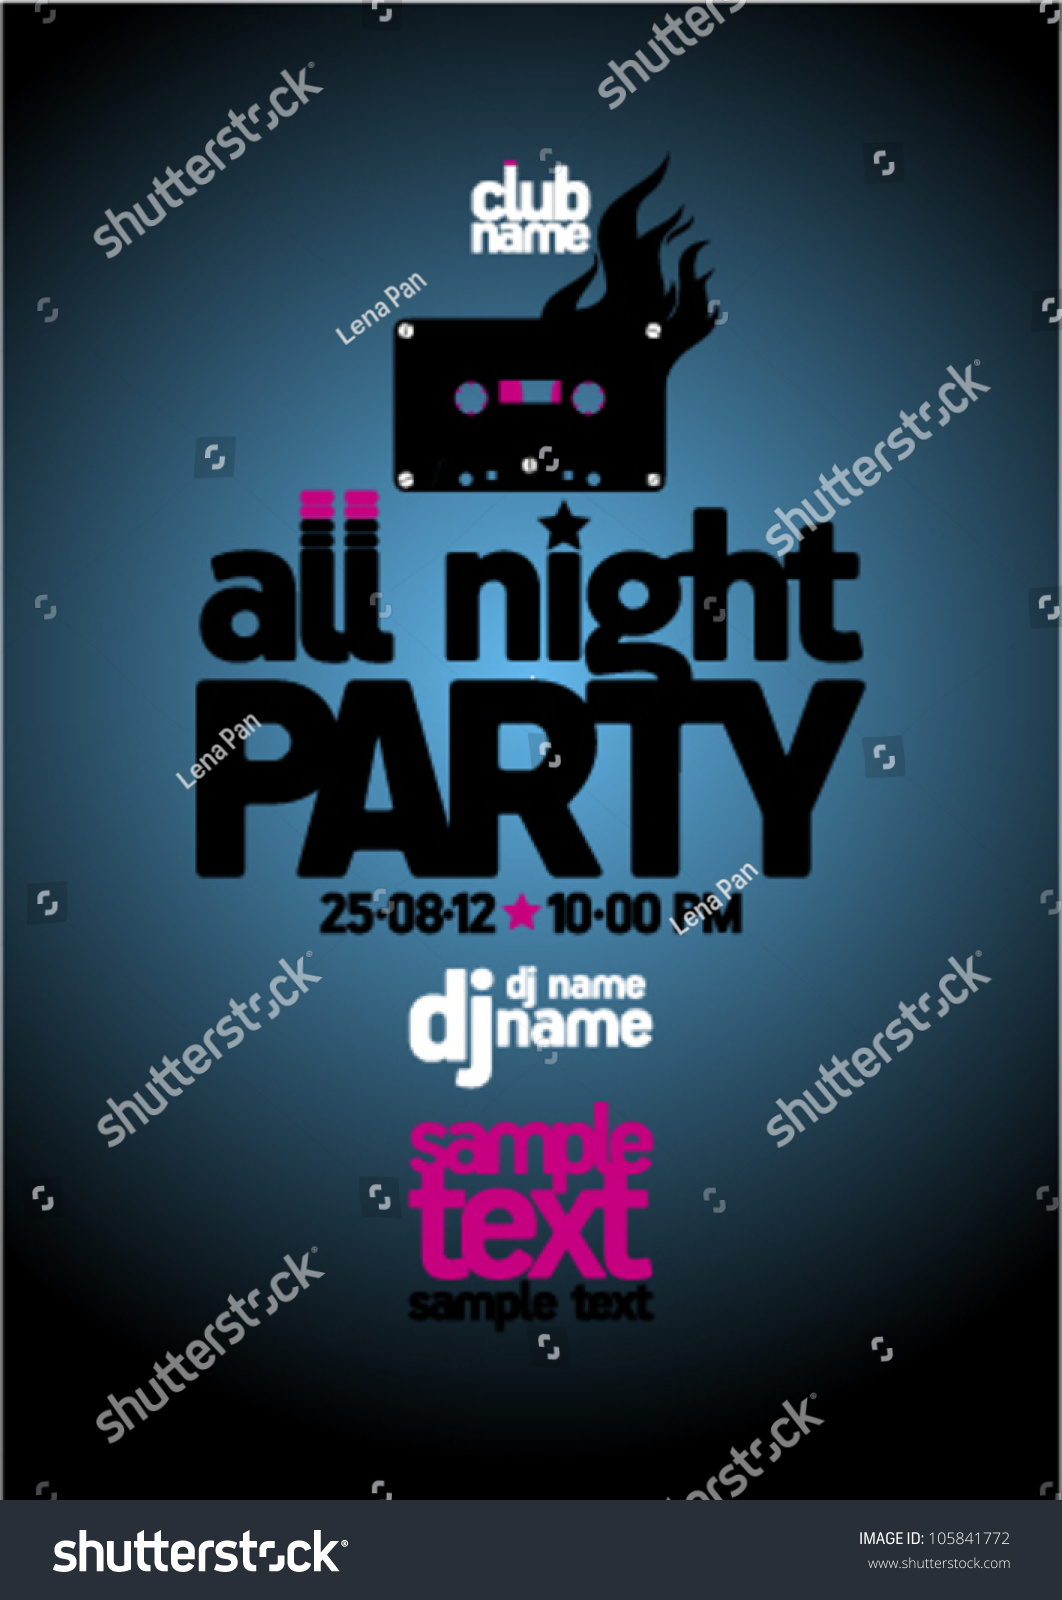 All Night Party Design Template With Place For Text. Stock Vector ...